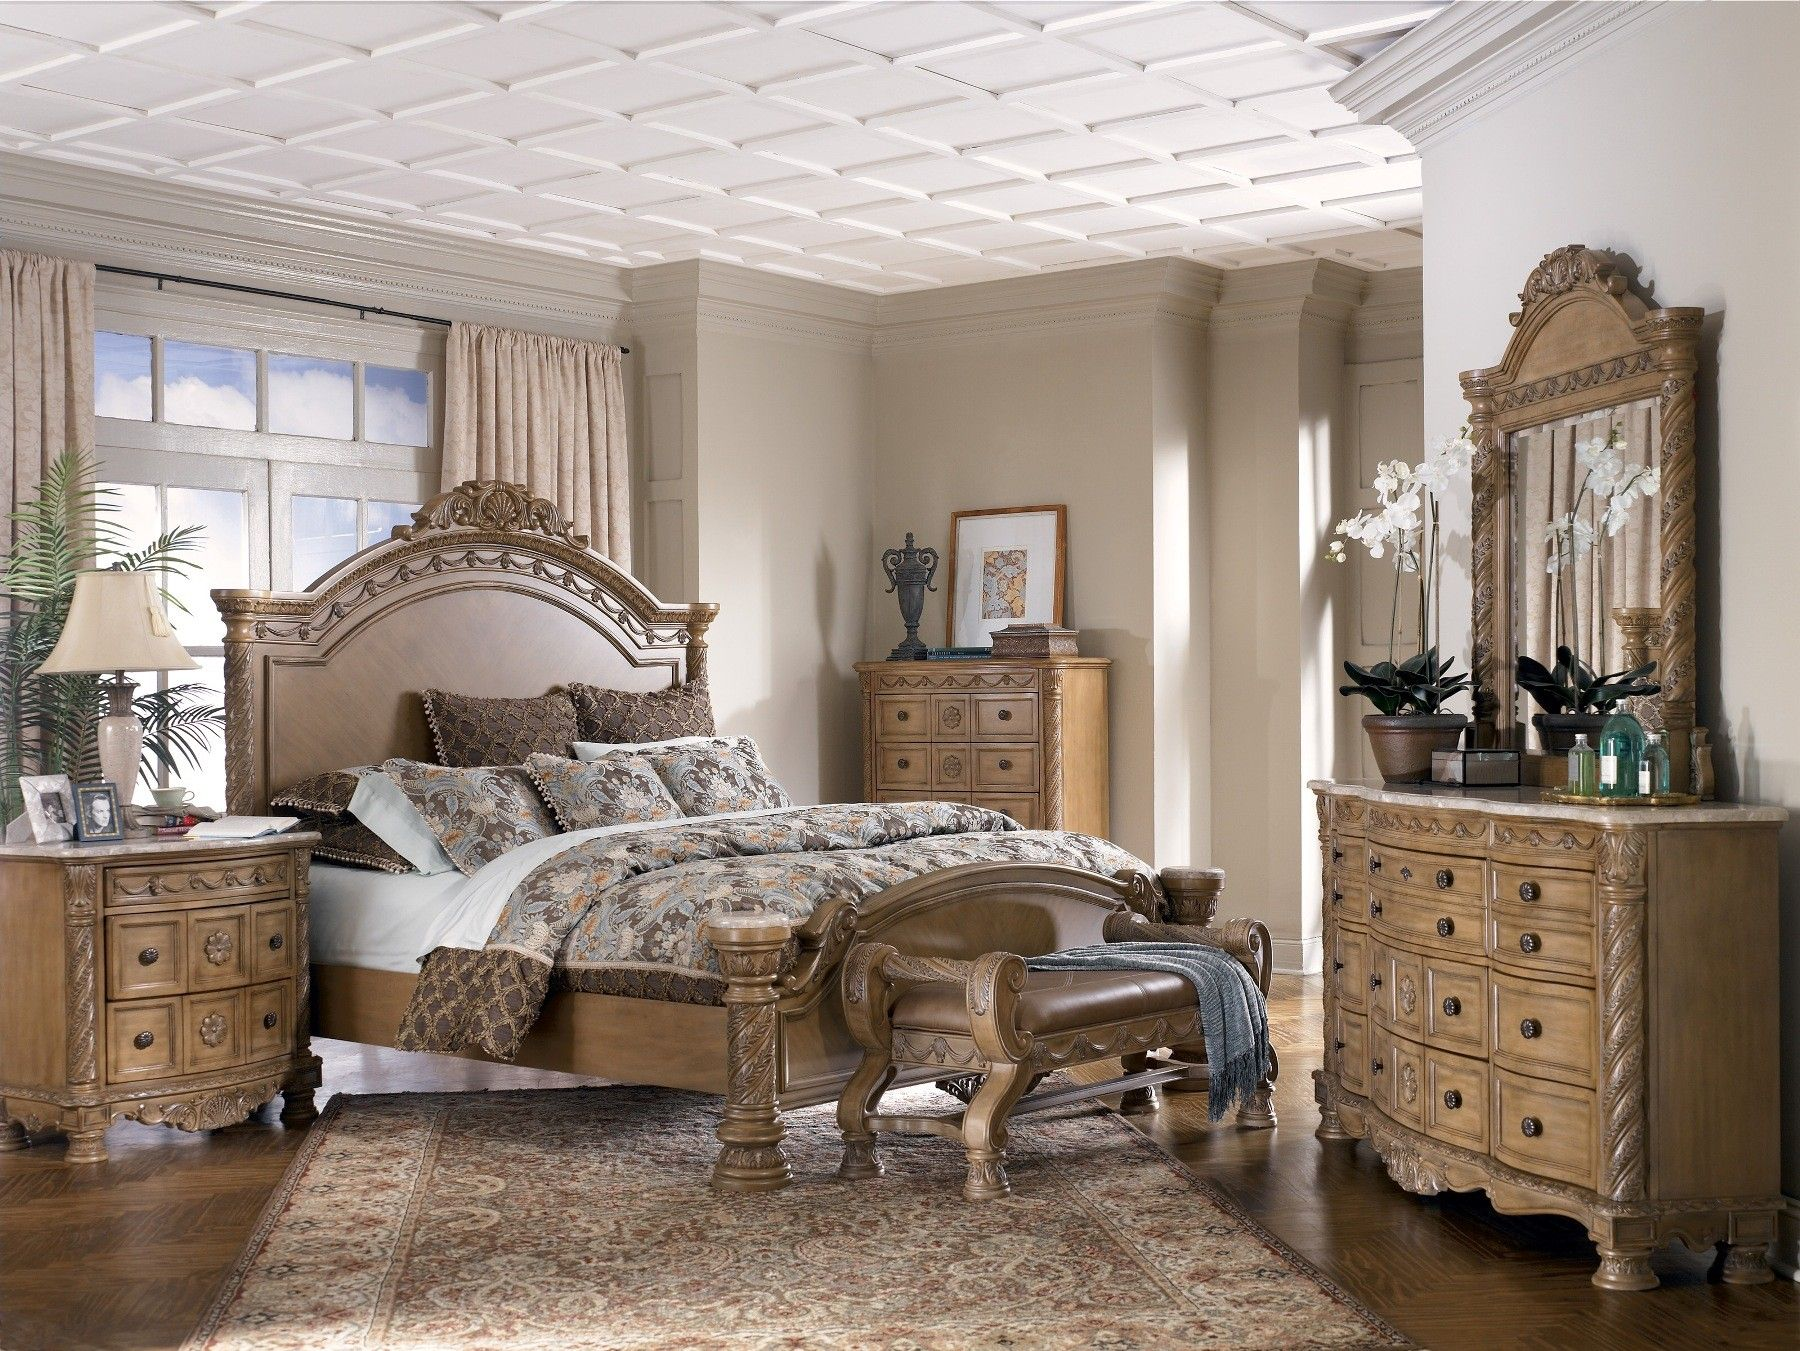 Ashley furniture gallery ashley furniture south coast for Where to get bedroom furniture